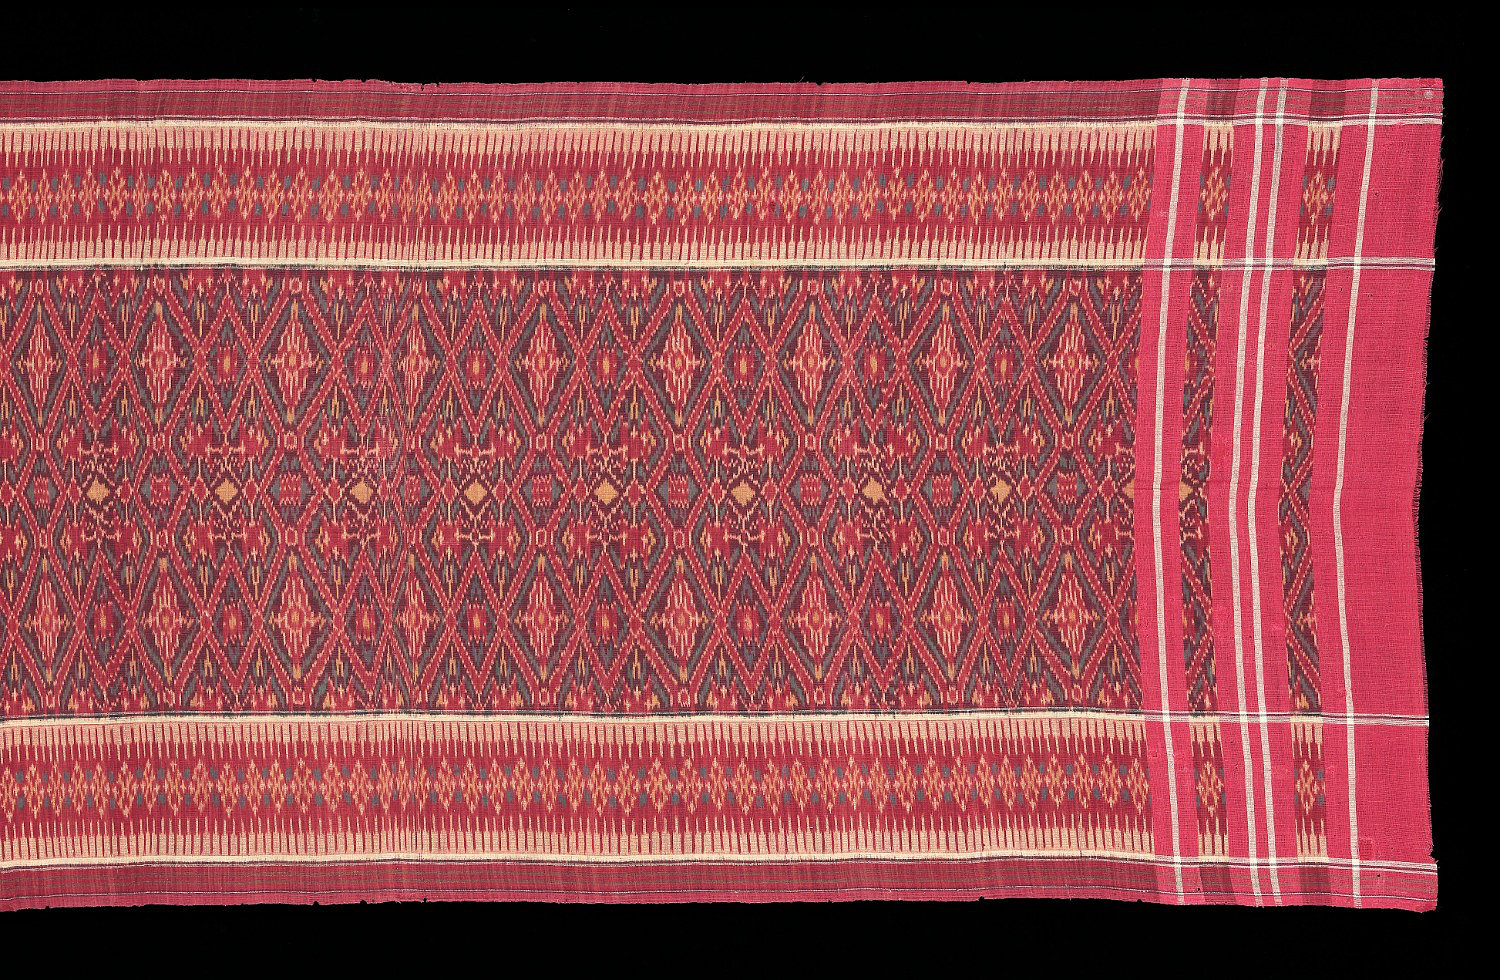 Detail of 1940-60s Cepuk, sacred ceremonial cloth.  Made of red cotton weft ikat copying Indian patola design and layout. Bali people, Nusa Peninda, South Bali, Indonesia.  240 x 77 cm   Samyama  Collection.